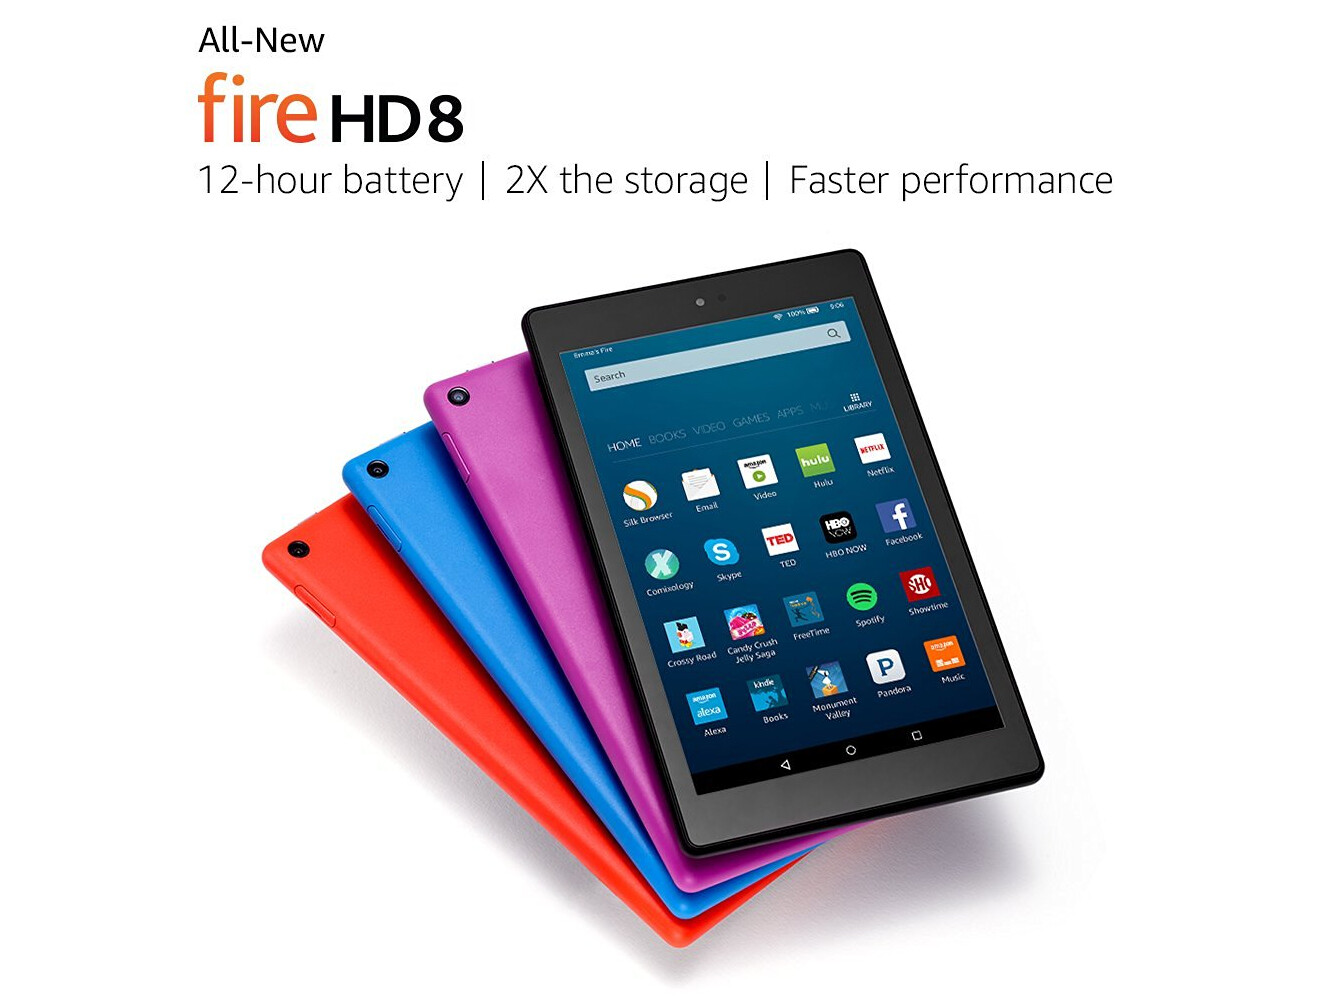 New amazon fire hd 8 price and release date New all hd video